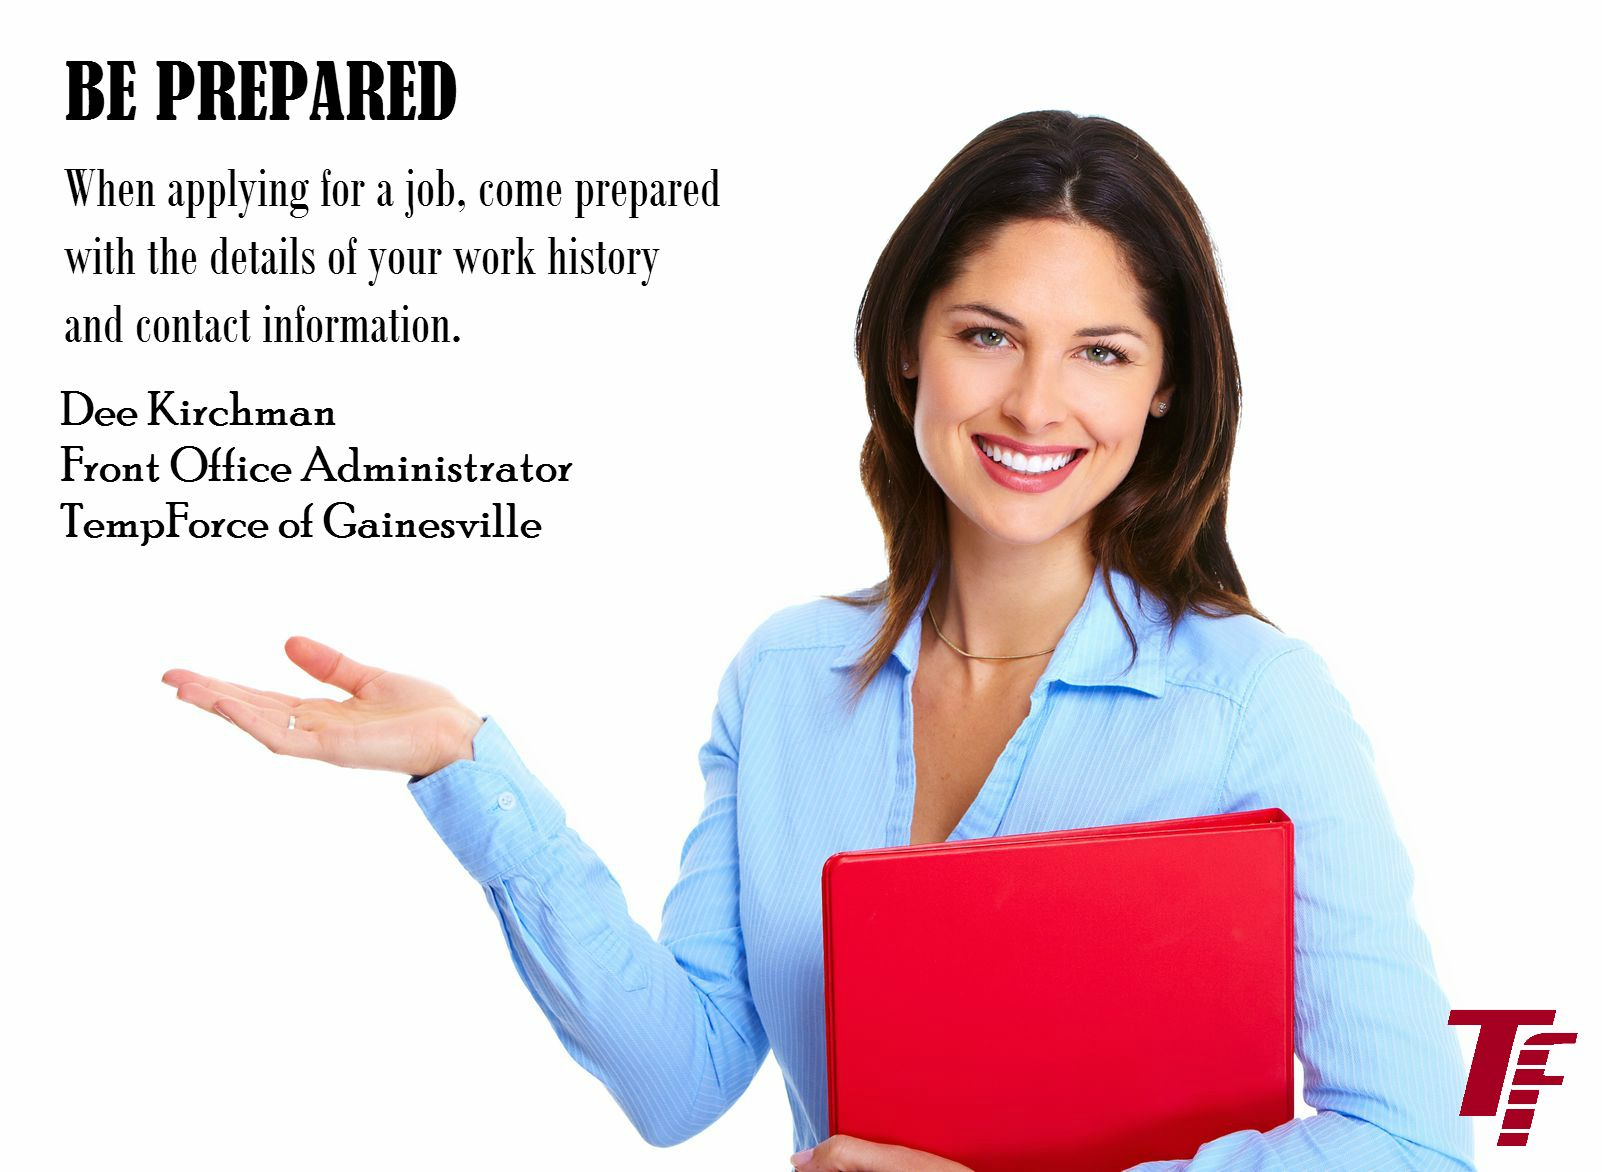 seeking employment tips jobseeker jobsearch tip of the day seeking employment tips jobseeker jobsearch